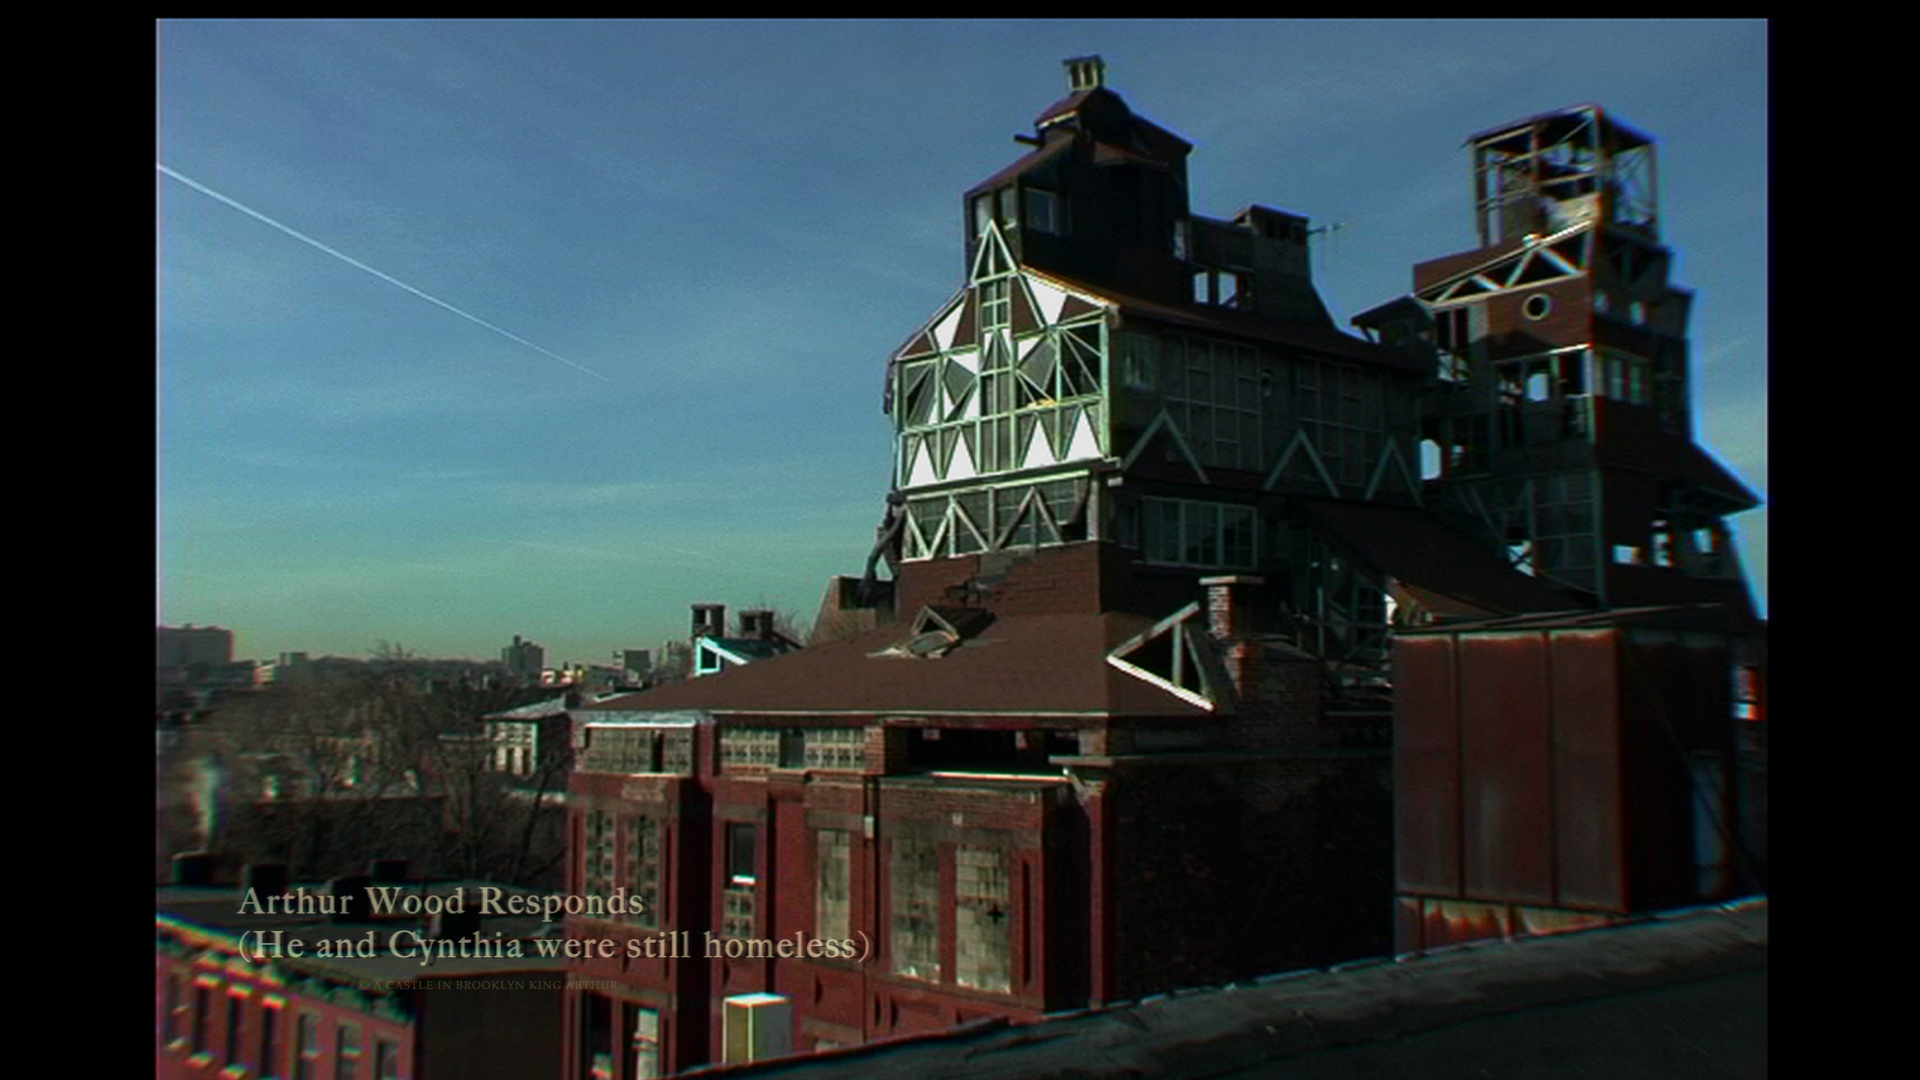 (MOVIE STILL) Broken Angel building